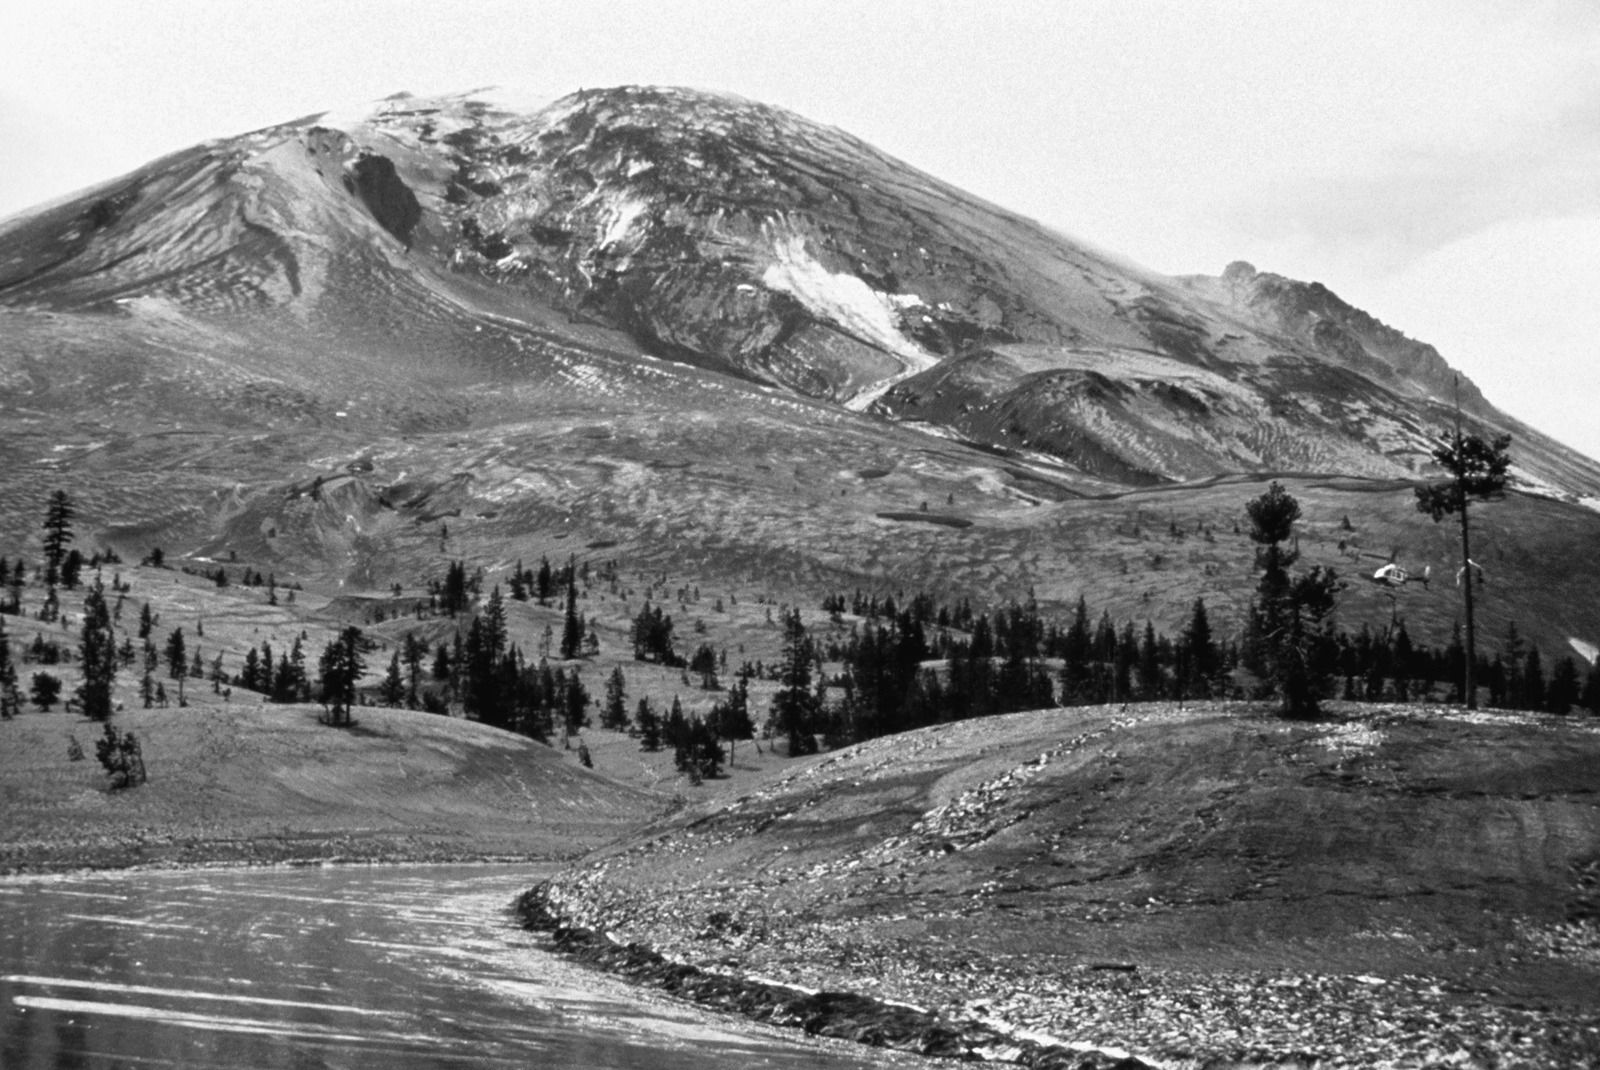 The St. Helens on 04/13/1980 from the Timberline parking area towards the bulge (USGS photo)